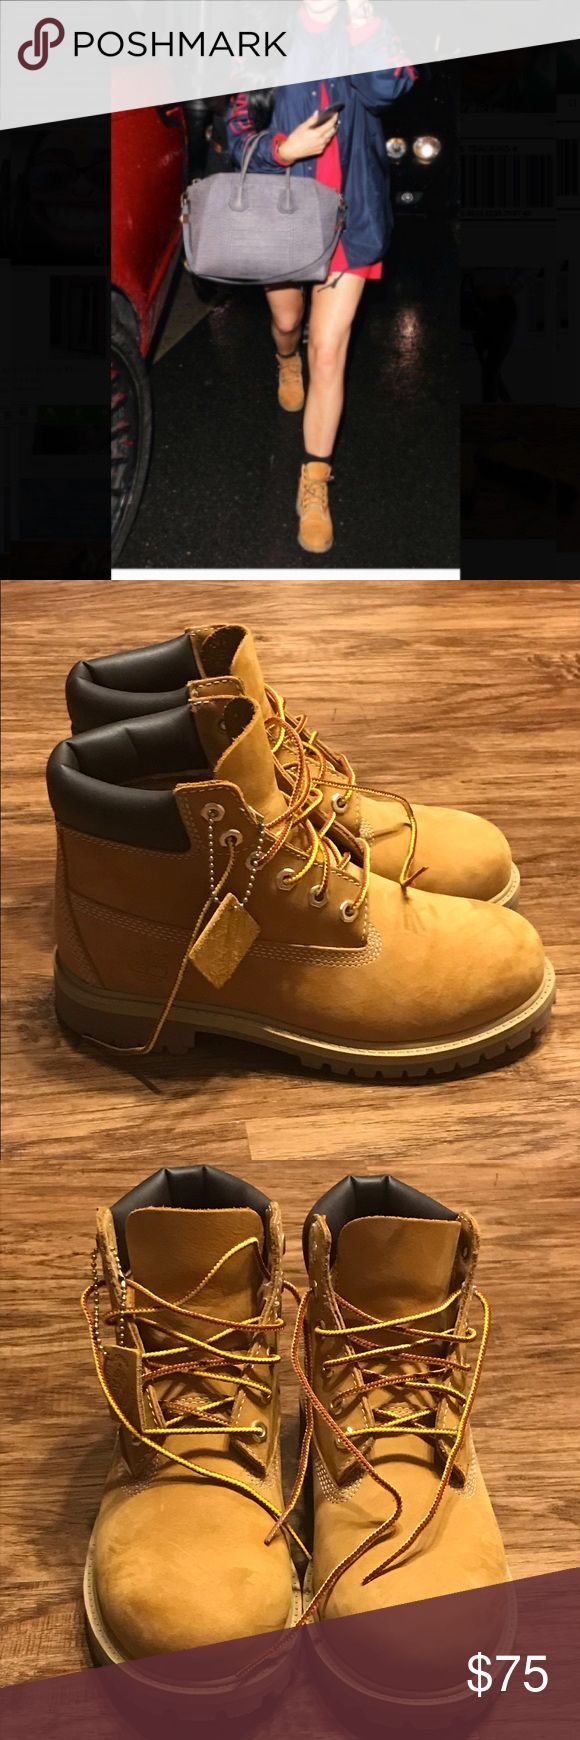 Wheat Timberland Boots Worn Once. Perfect Condition. Size 3 in Boys - Equivalent to a Size 6 in Women. Timberland Shoes Winter & Rain Boots